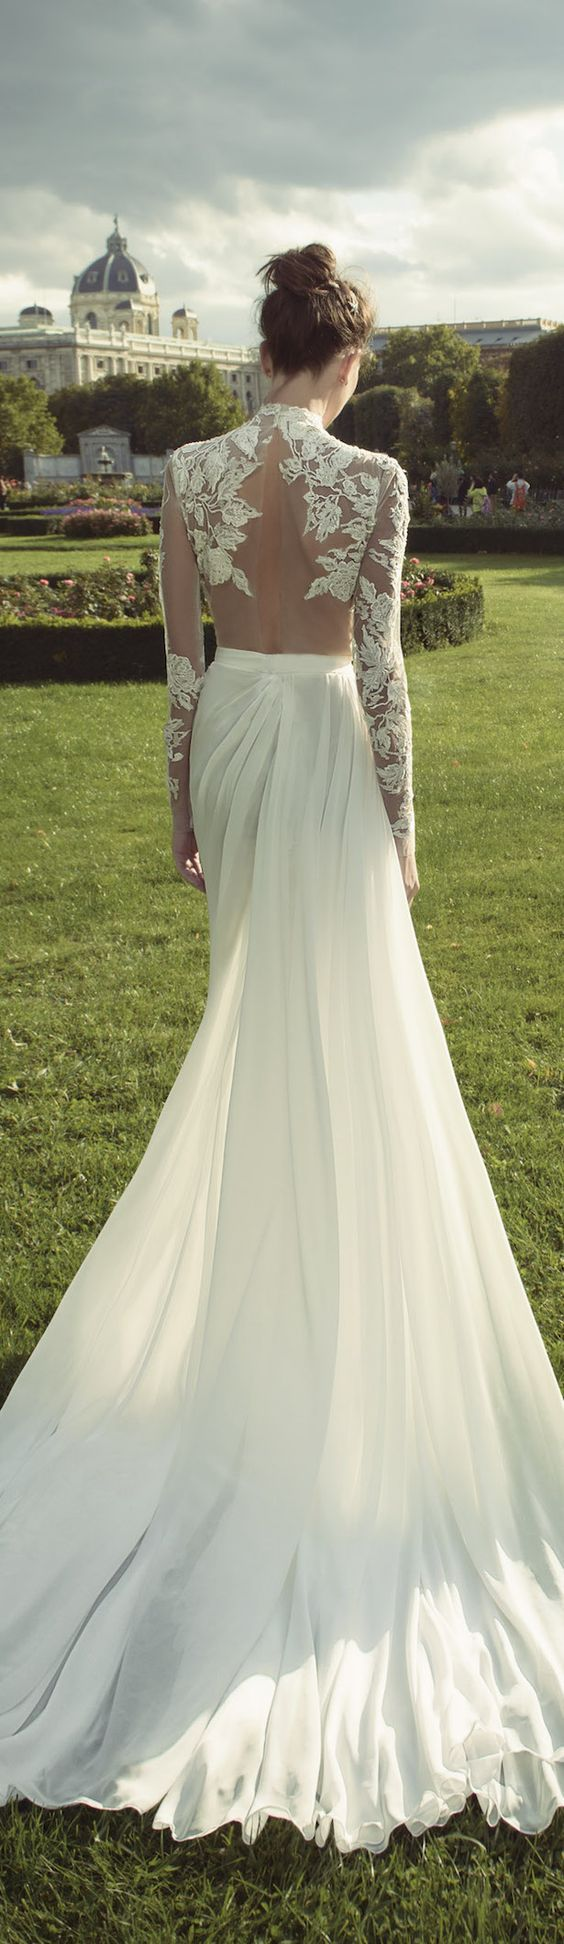 vintage wedding dresses fall dresses for wedding 50 Beautiful Lace Wedding Dresses To Die For